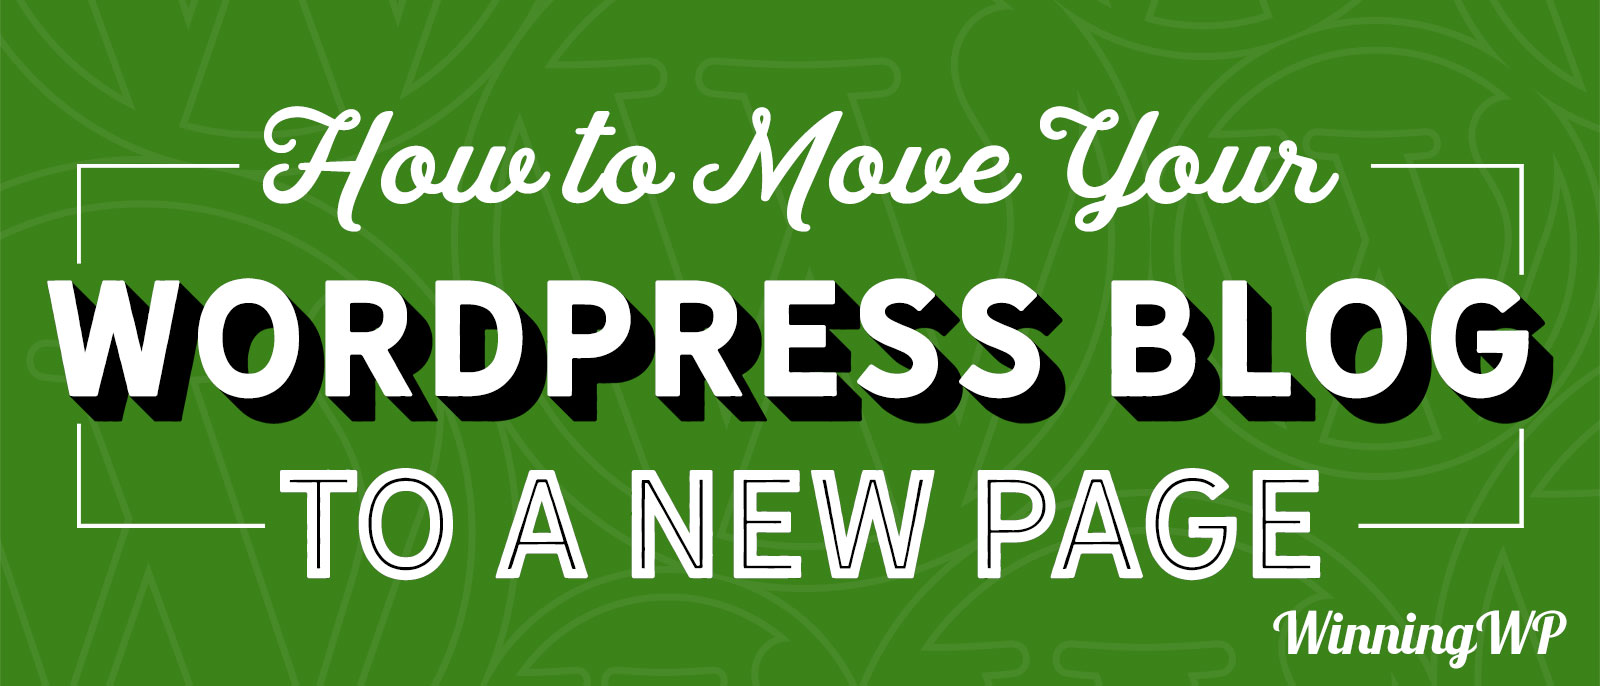 how-to-move-your-wordpress-blog-to-a-new-page